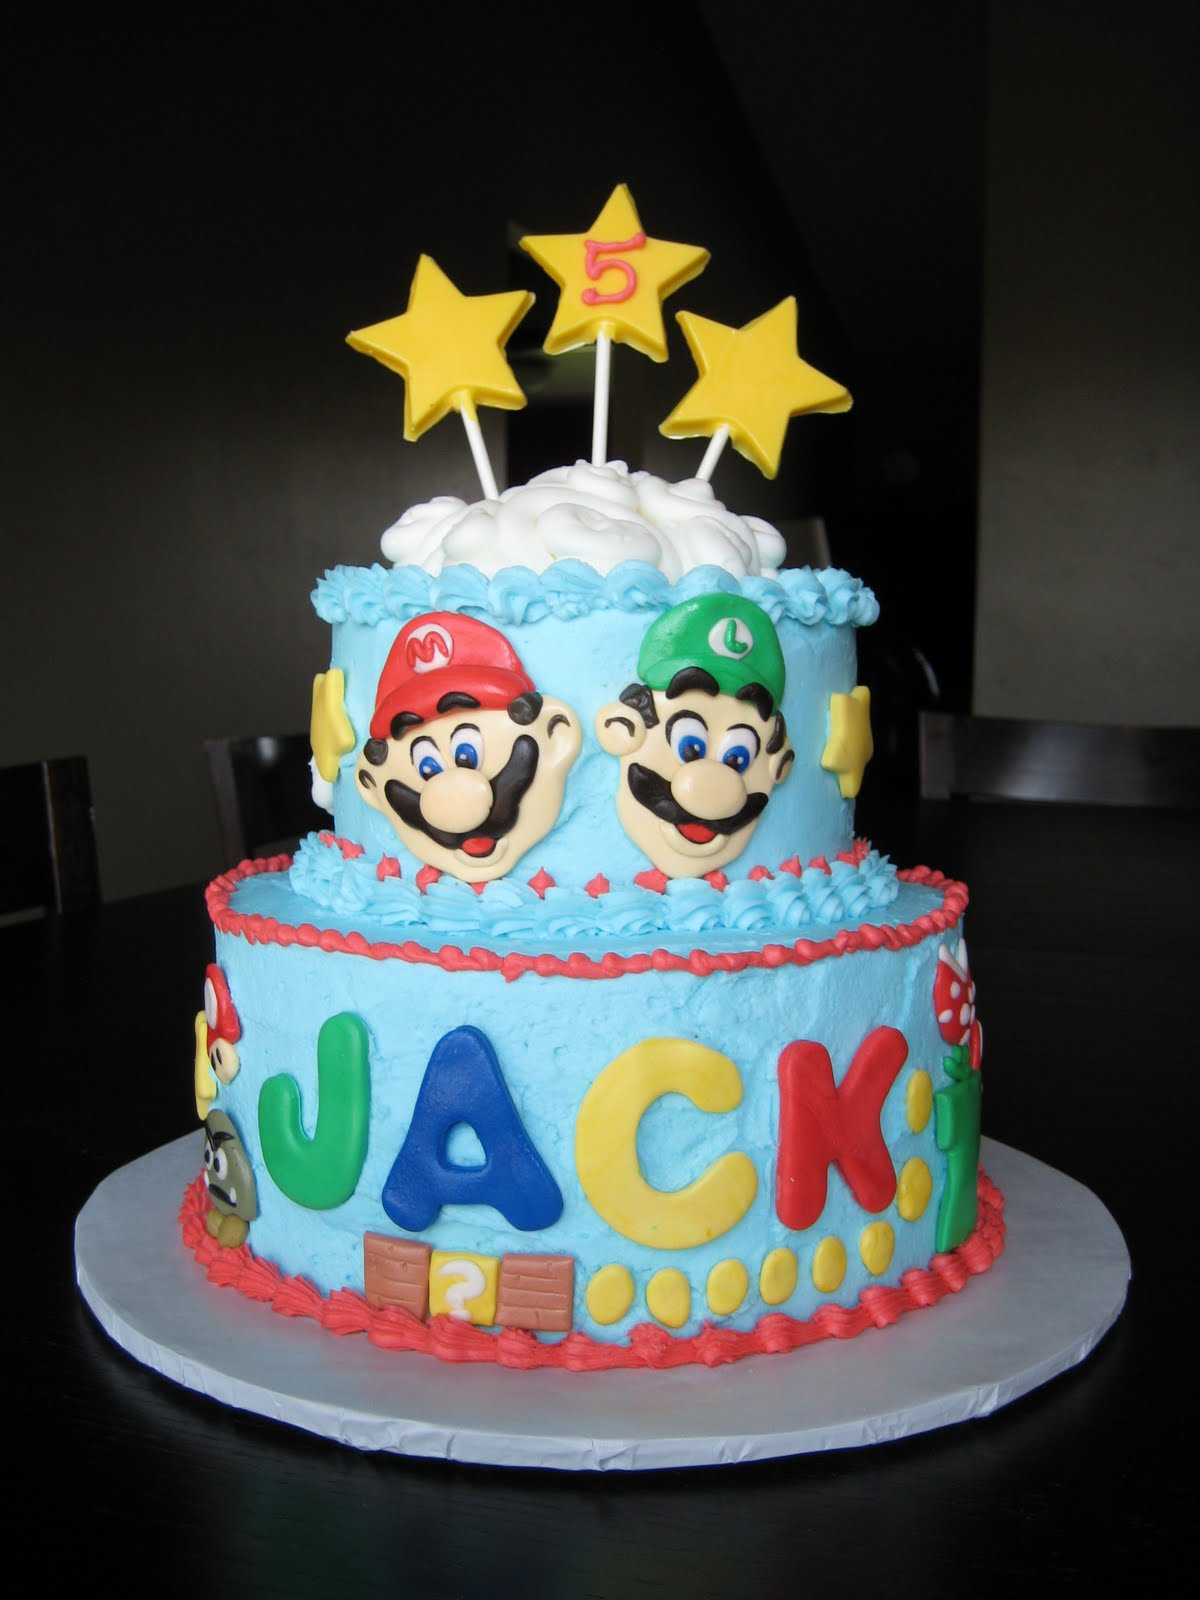 Cake Pictures For Brother : Custom Cakes by Julie: Mario Brothers Cake